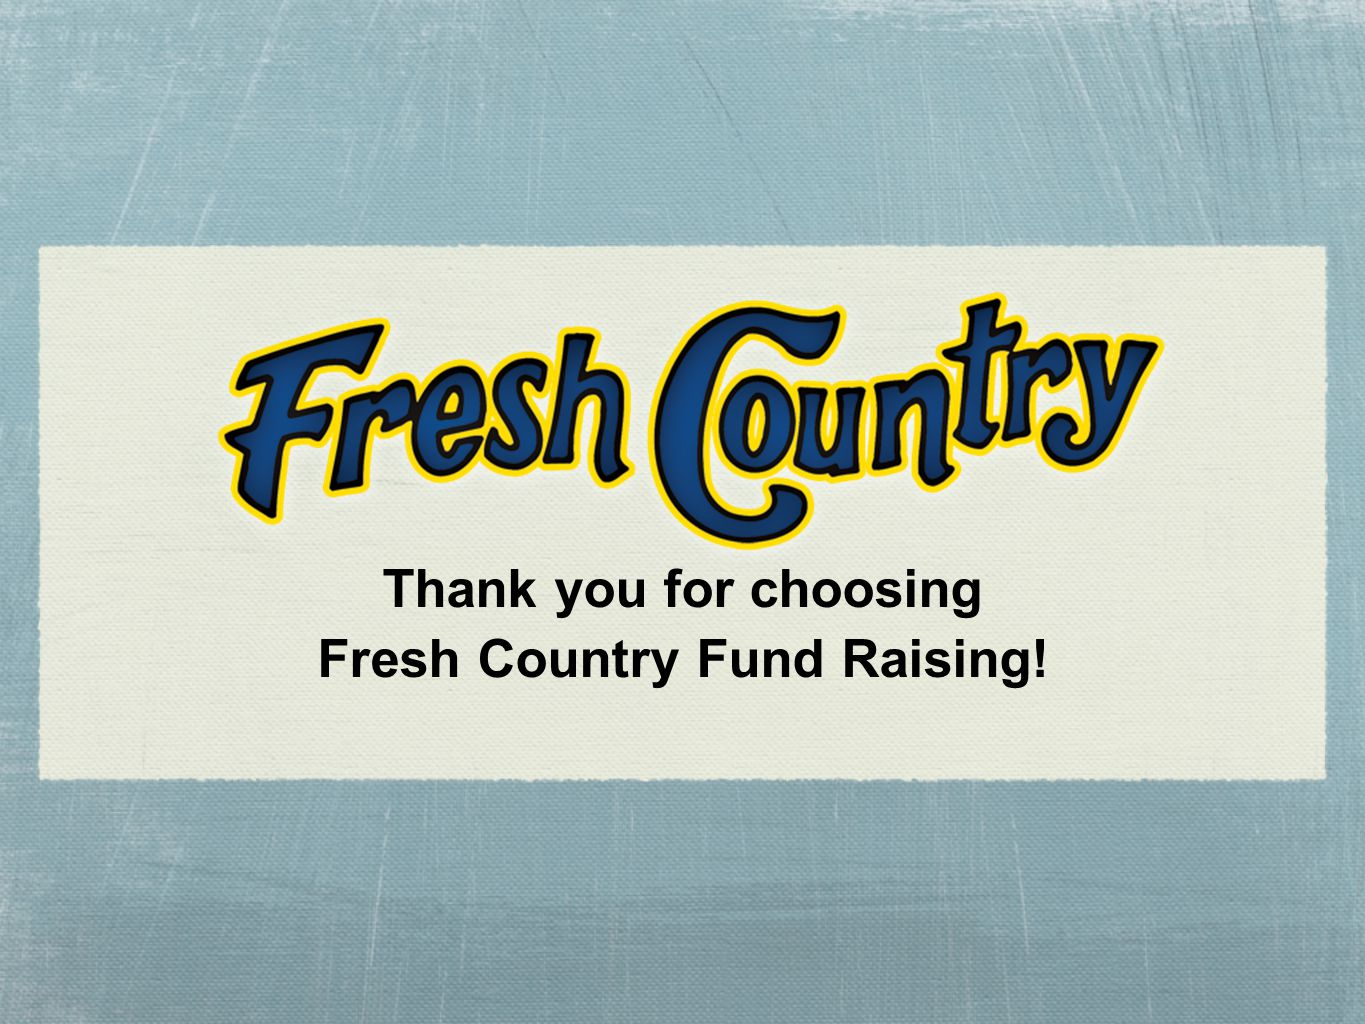 Thank you for choosing Fresh Country Fund Raising!